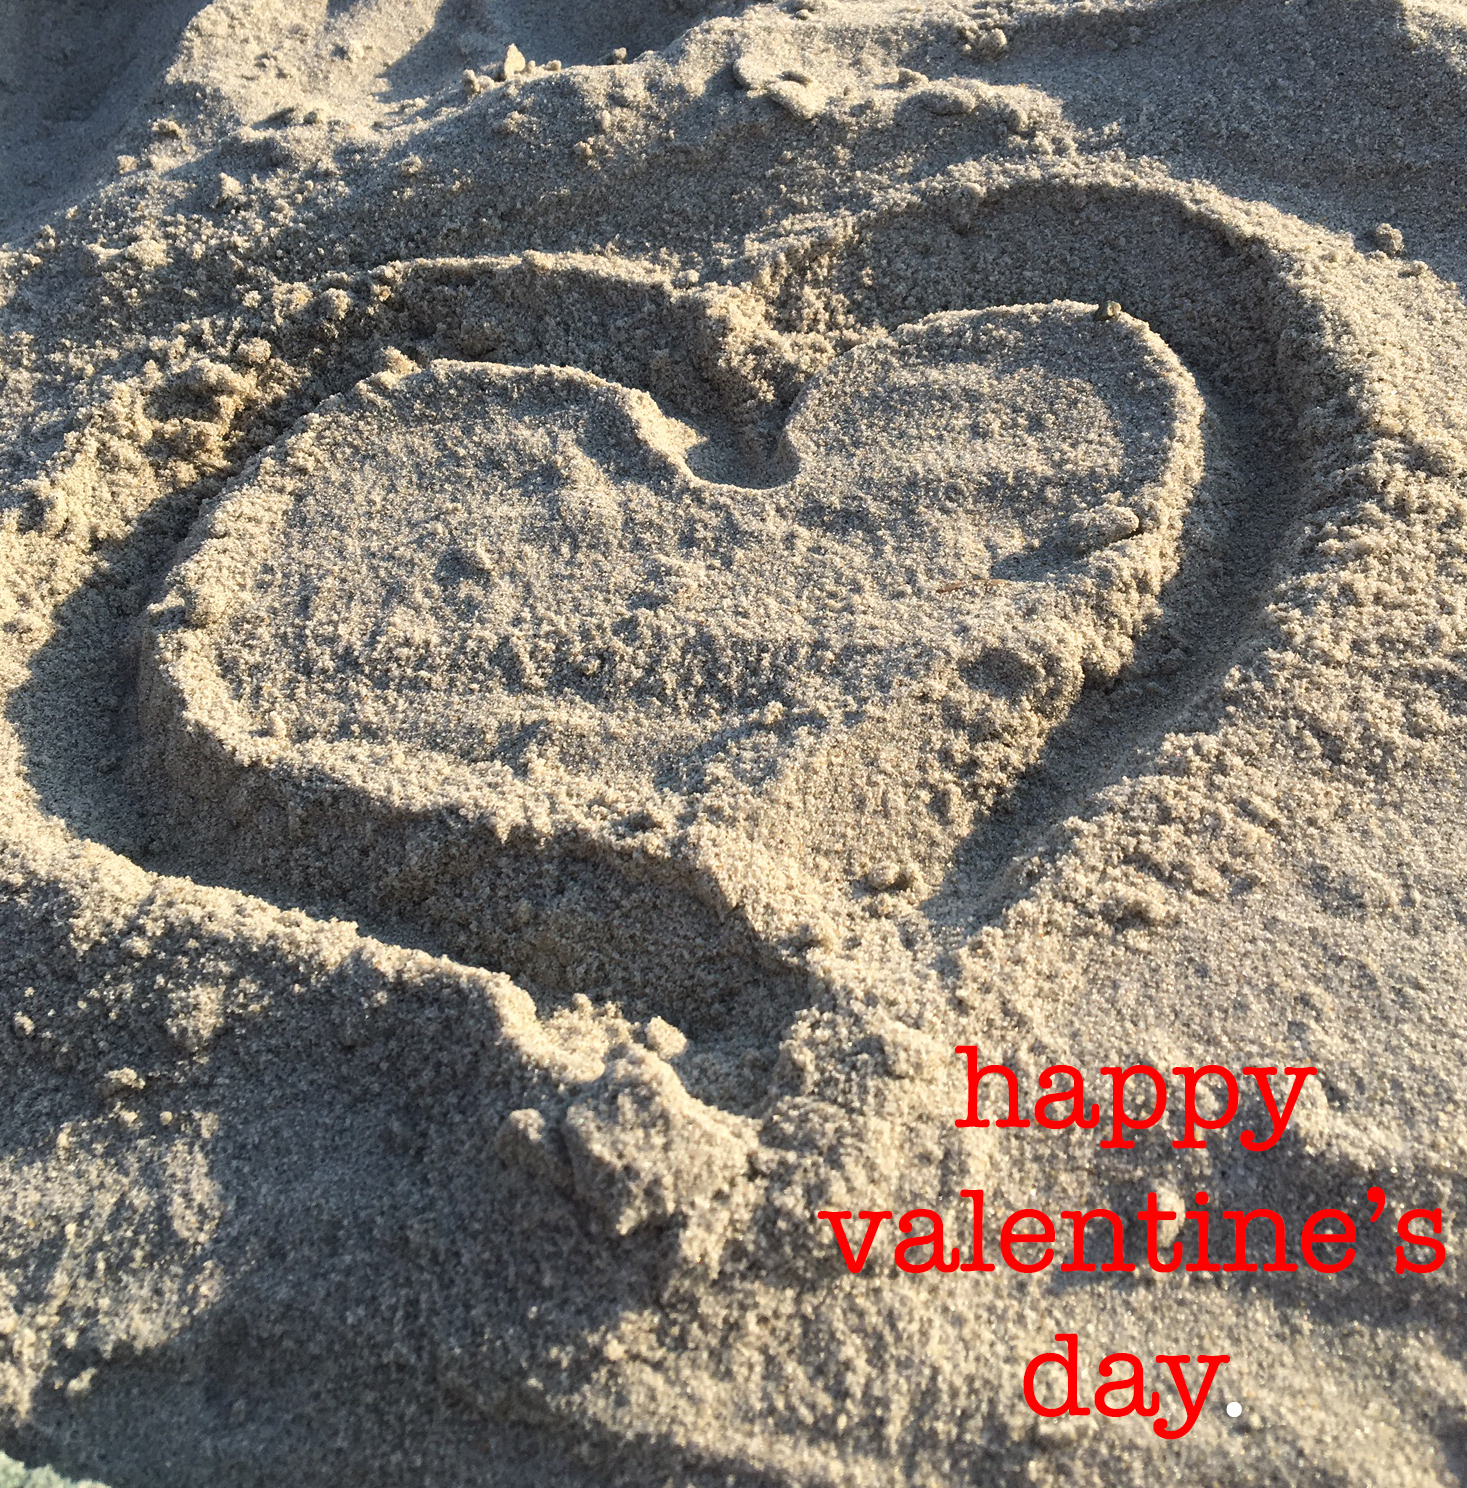 heart in sand happy valentine's day copy